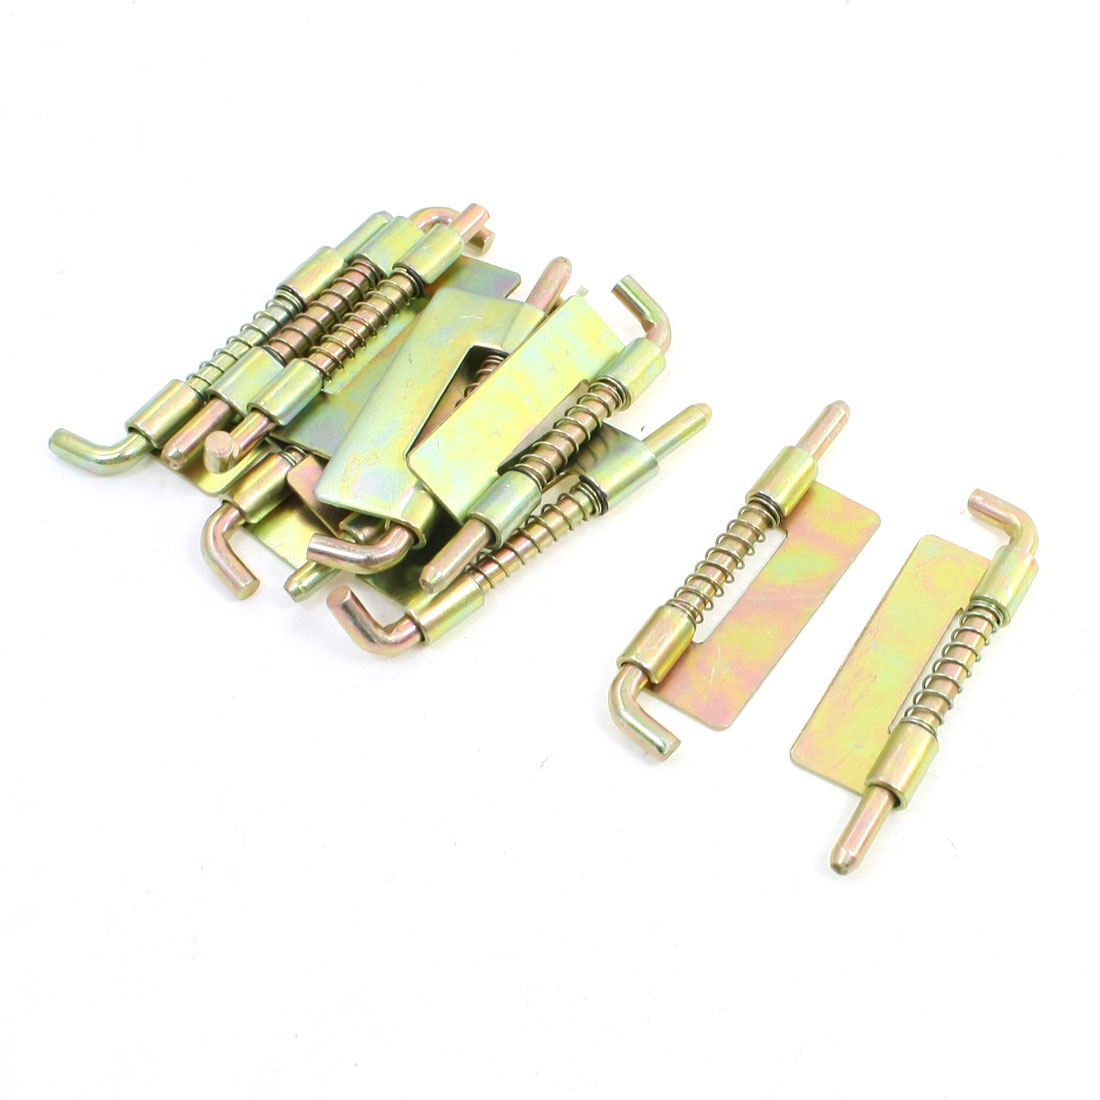 10 Pcs Locked Spring Loaded Metal Security Barrel Bolt Latch 7.5cm